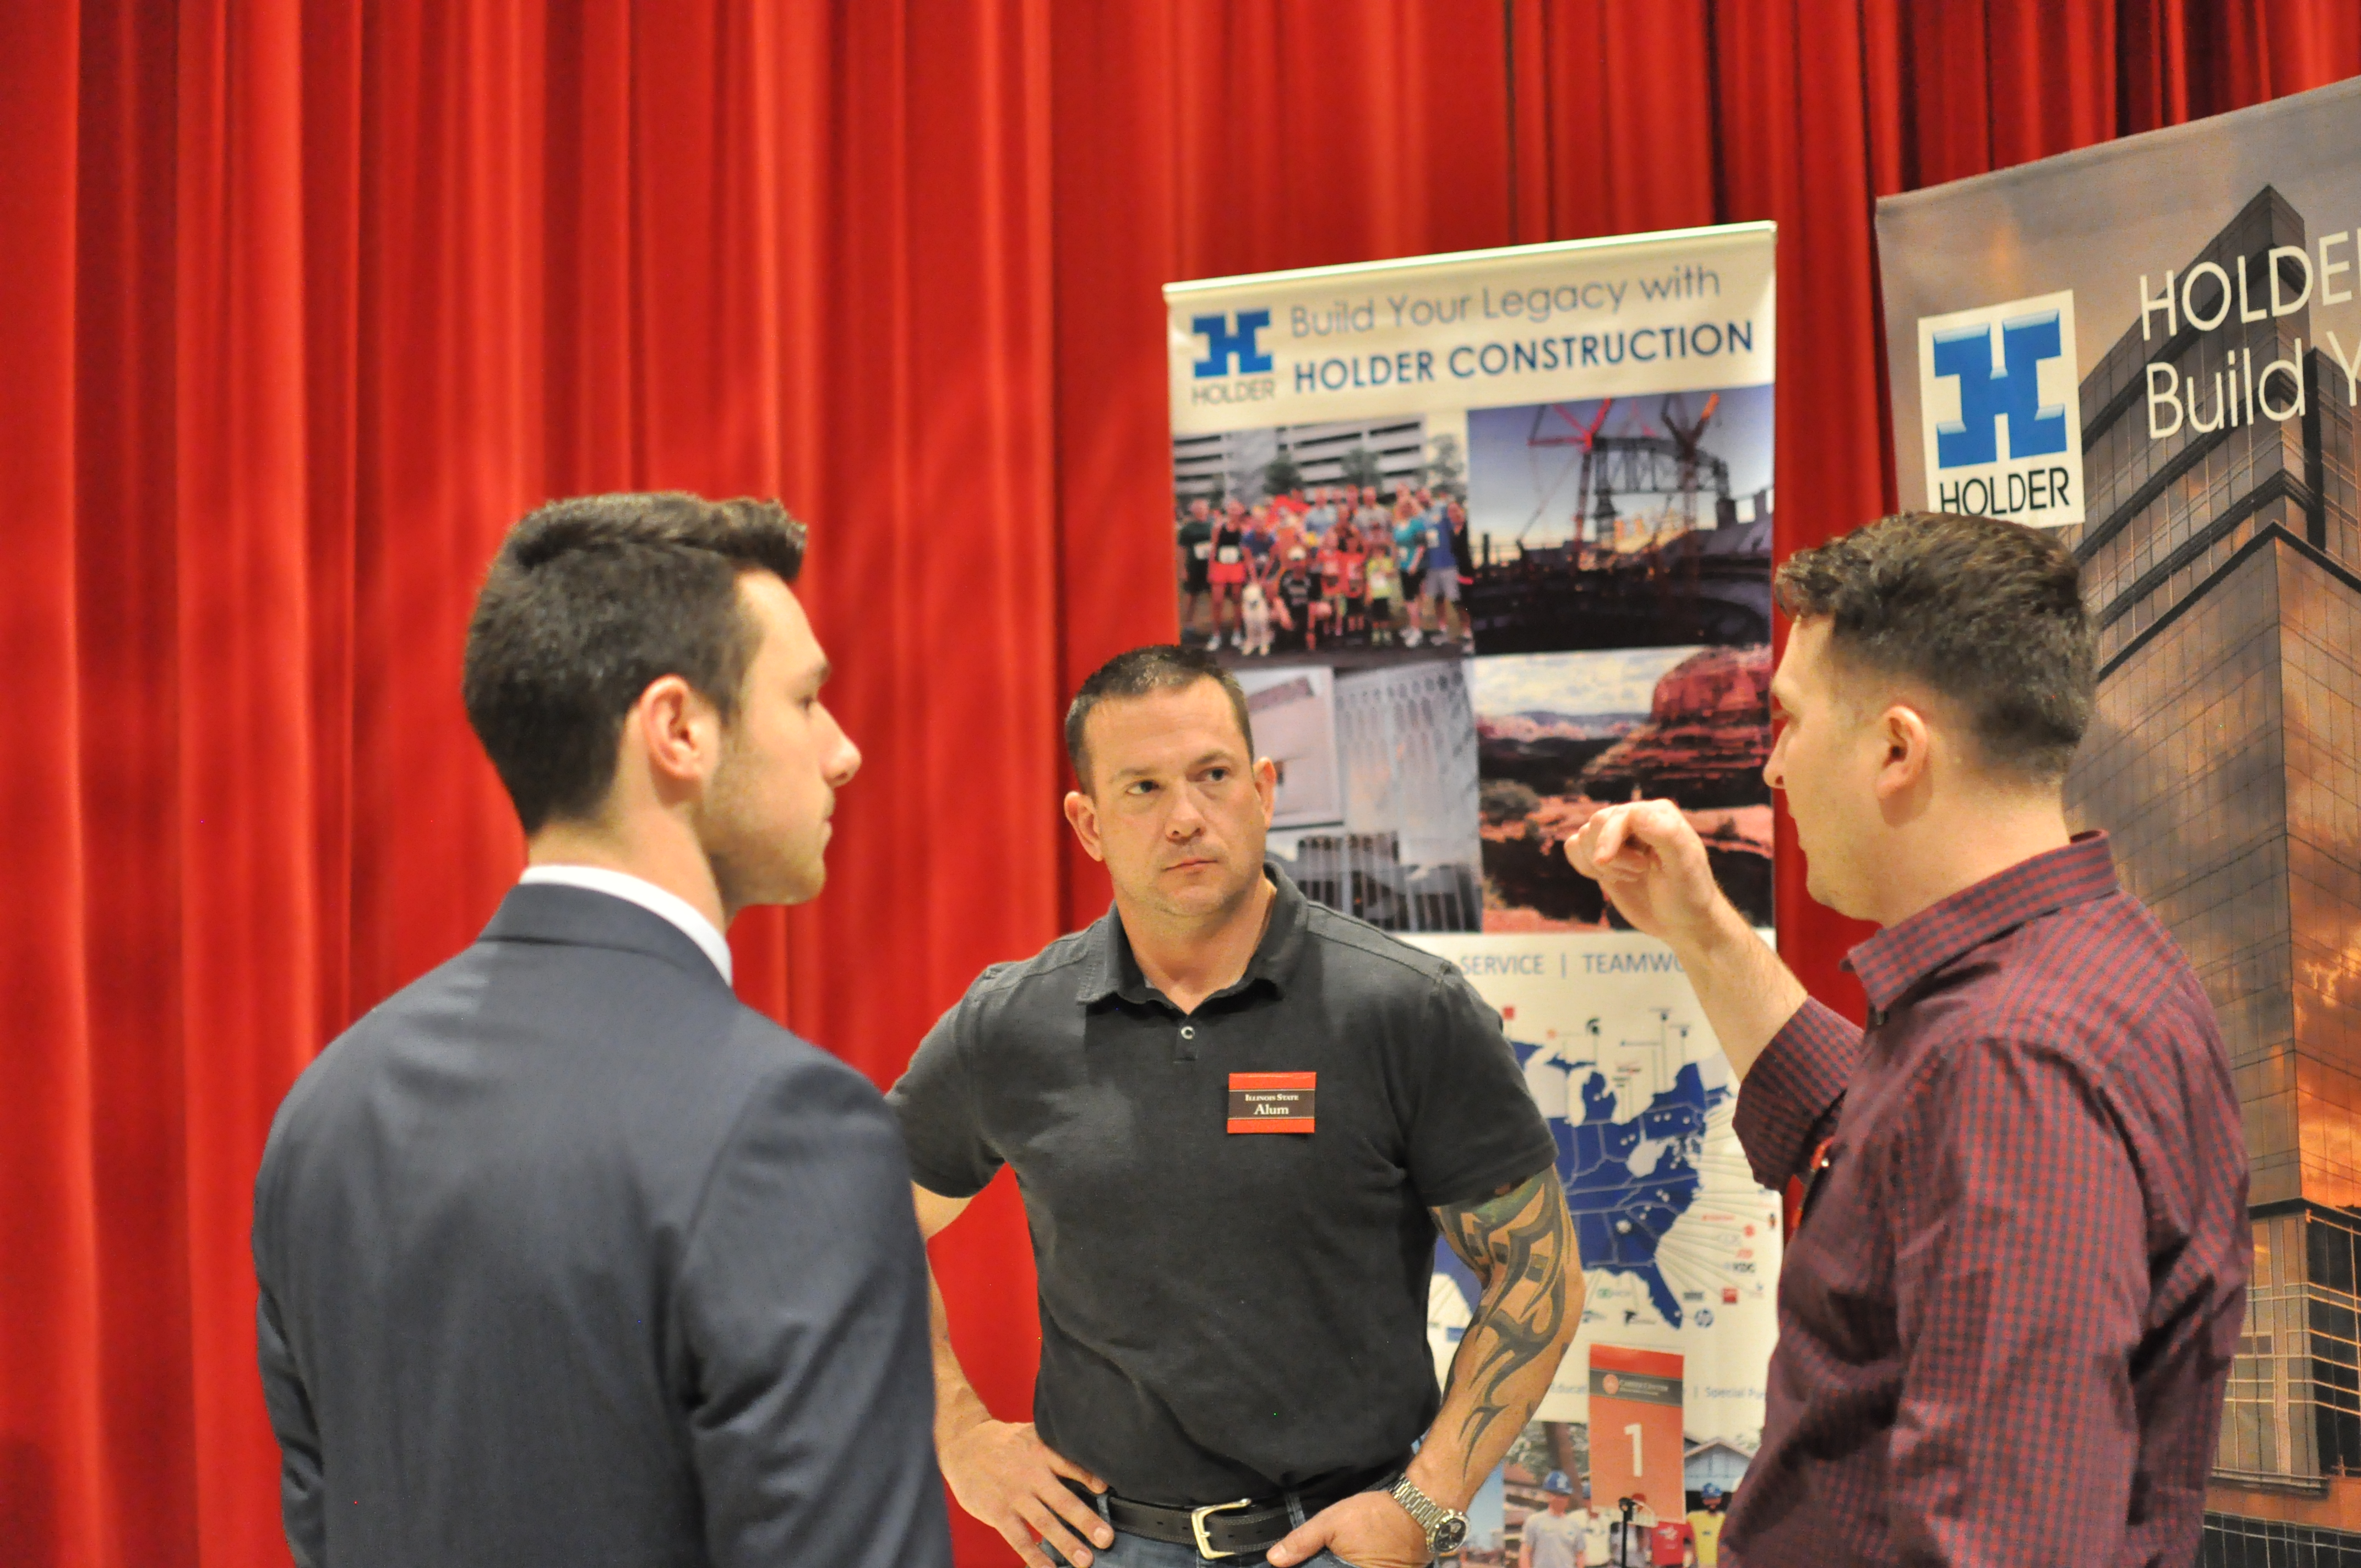 Casey Kelly and Chad Morehouse recruiting for Holder Construction